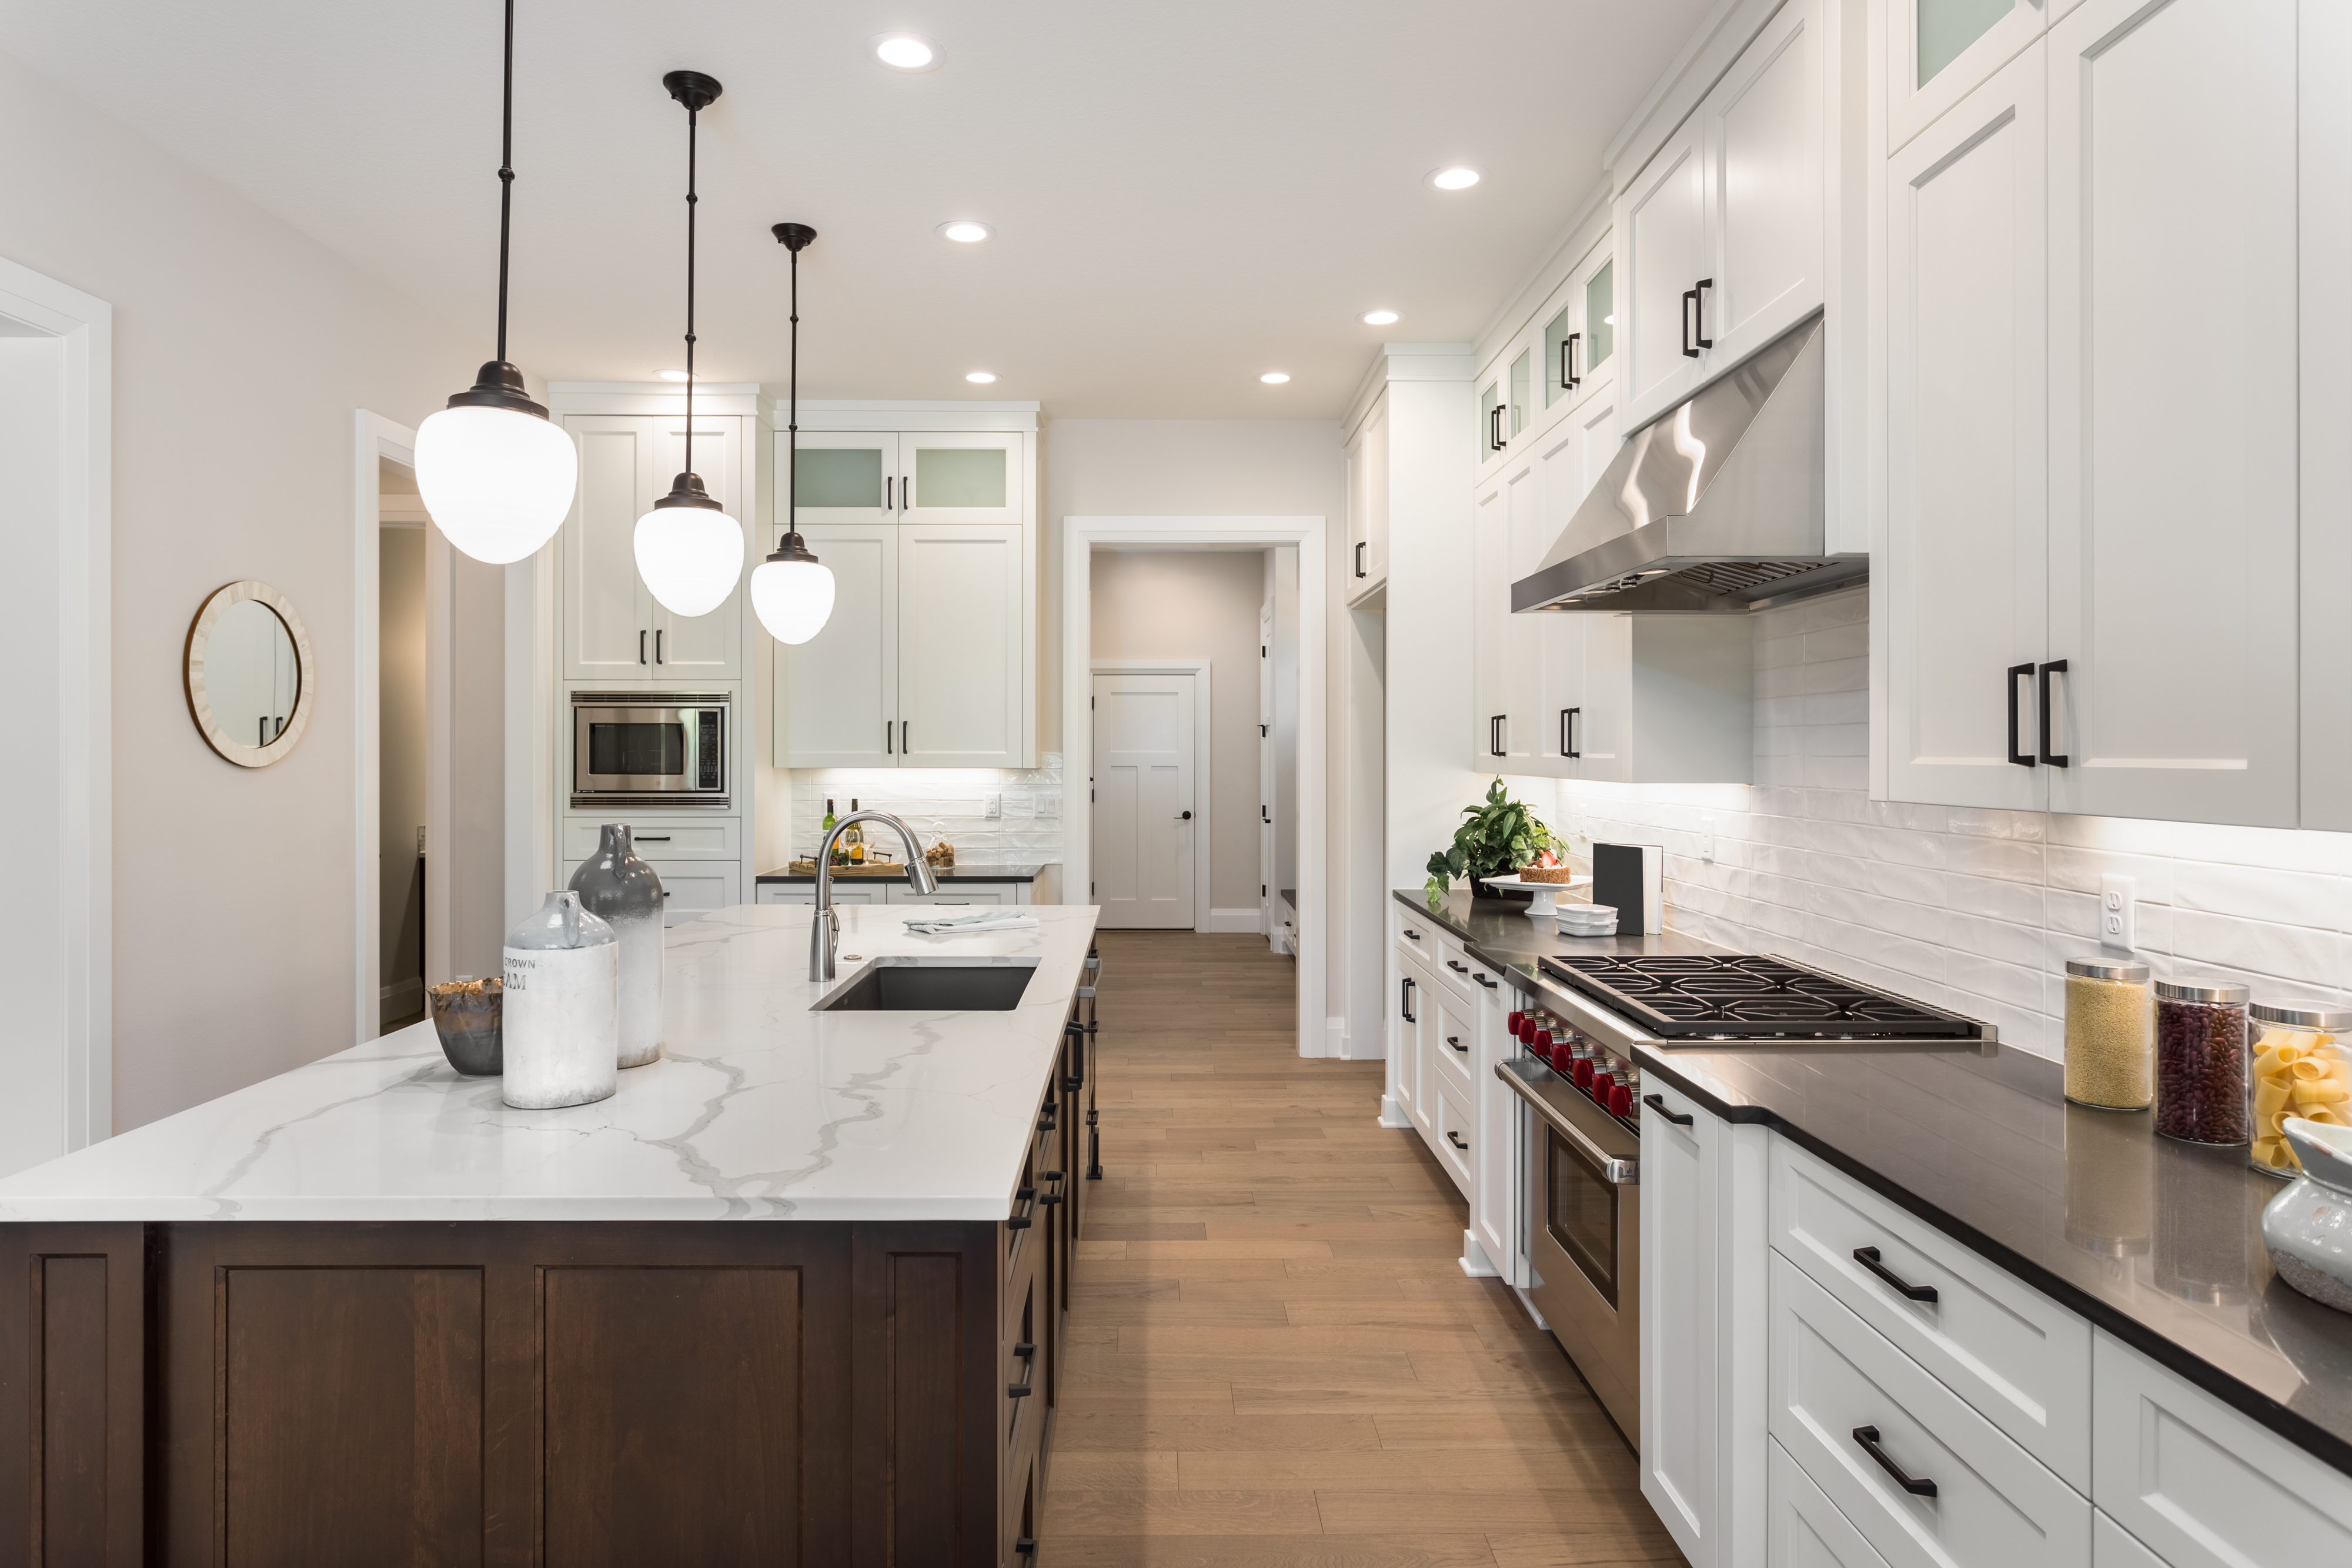 What Is The Depth Of A Standard Countertop Hunker